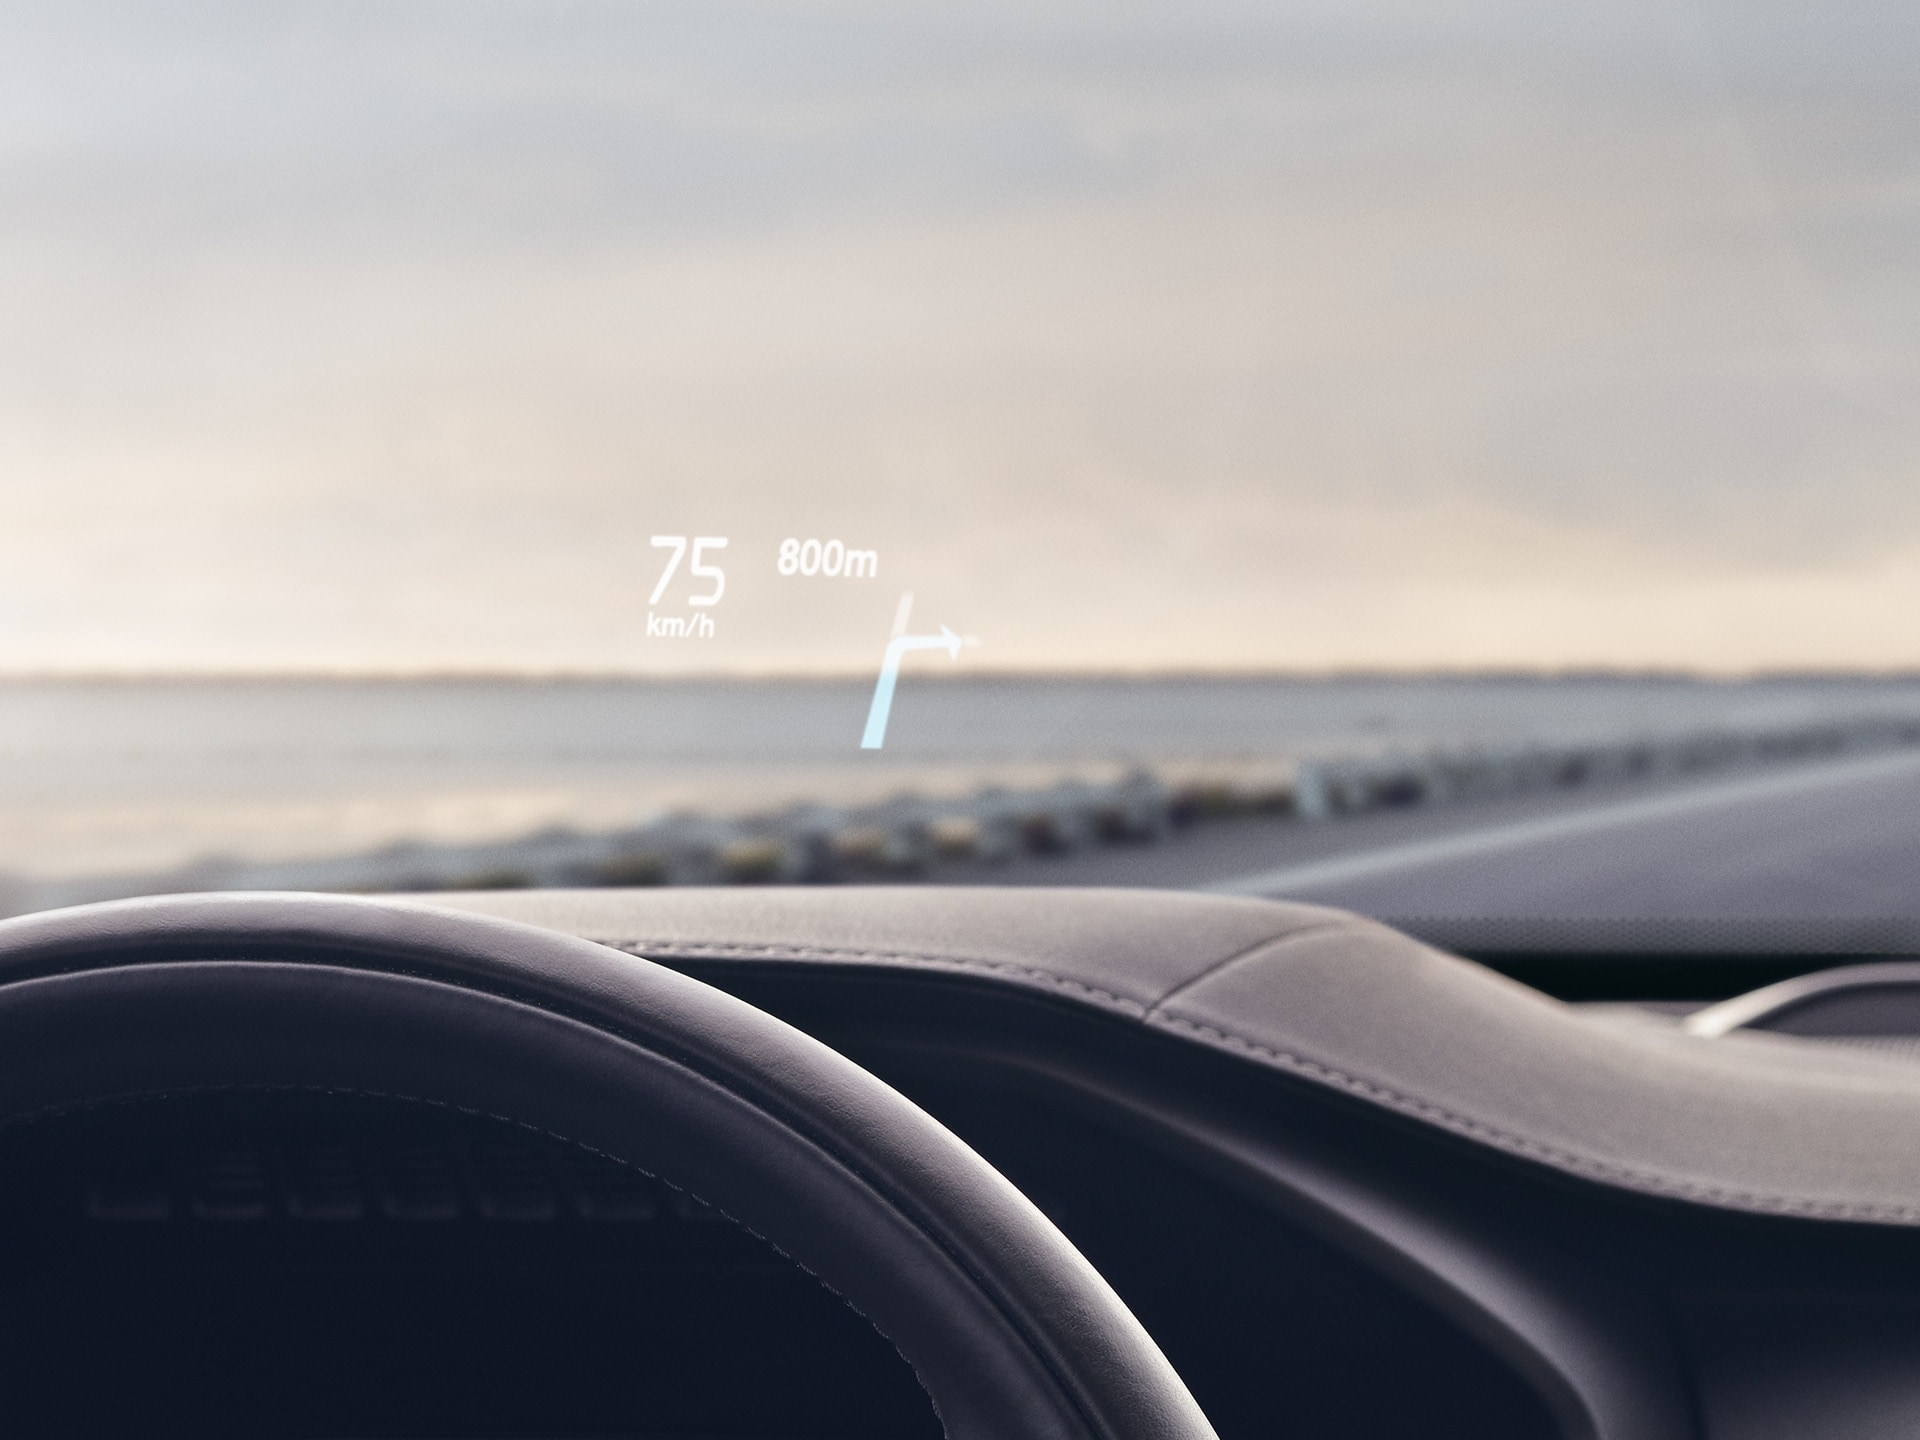 Inside a Volvo,head-up display showingdriving speedand navigationon the windshield.